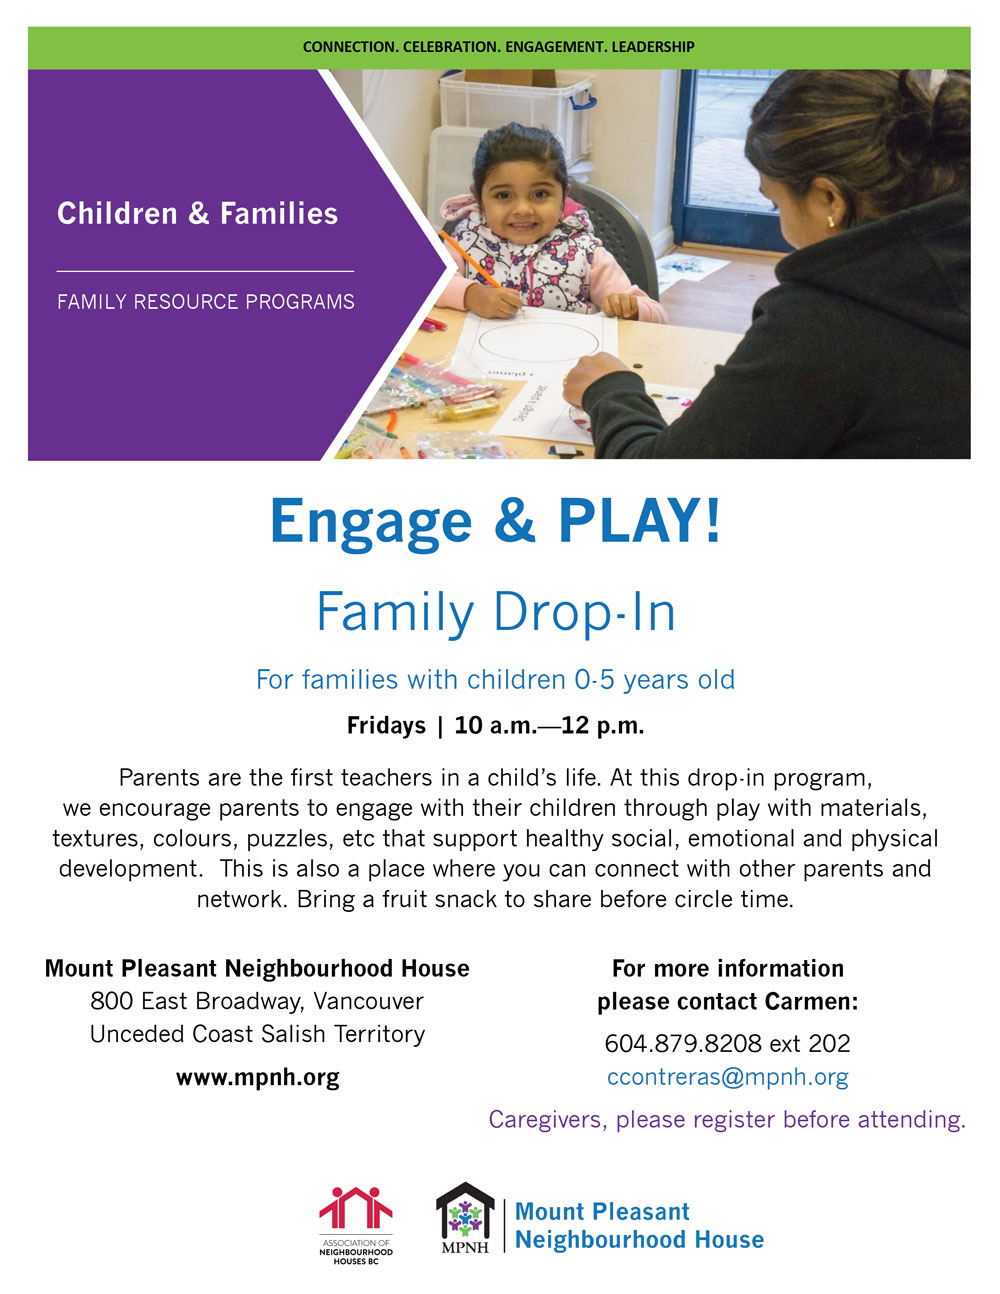 An image of the poster with event details, featuring a photo of a caregiver and child doing a craft together.